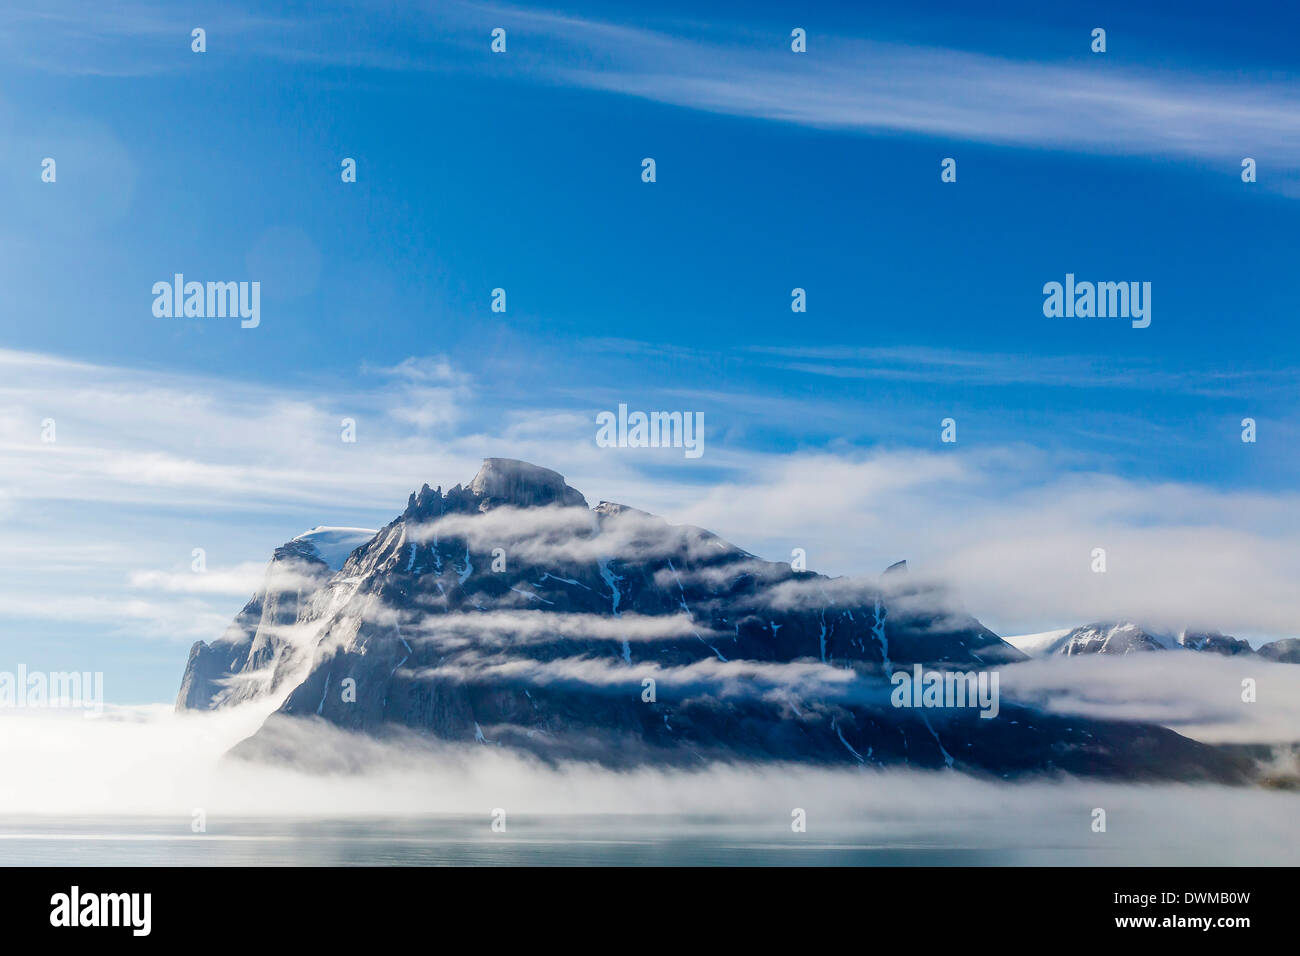 Fog lifting on the steep cliffs of Icy Arm, Baffin Island, Nunavut, Canada, North America Stock Photo